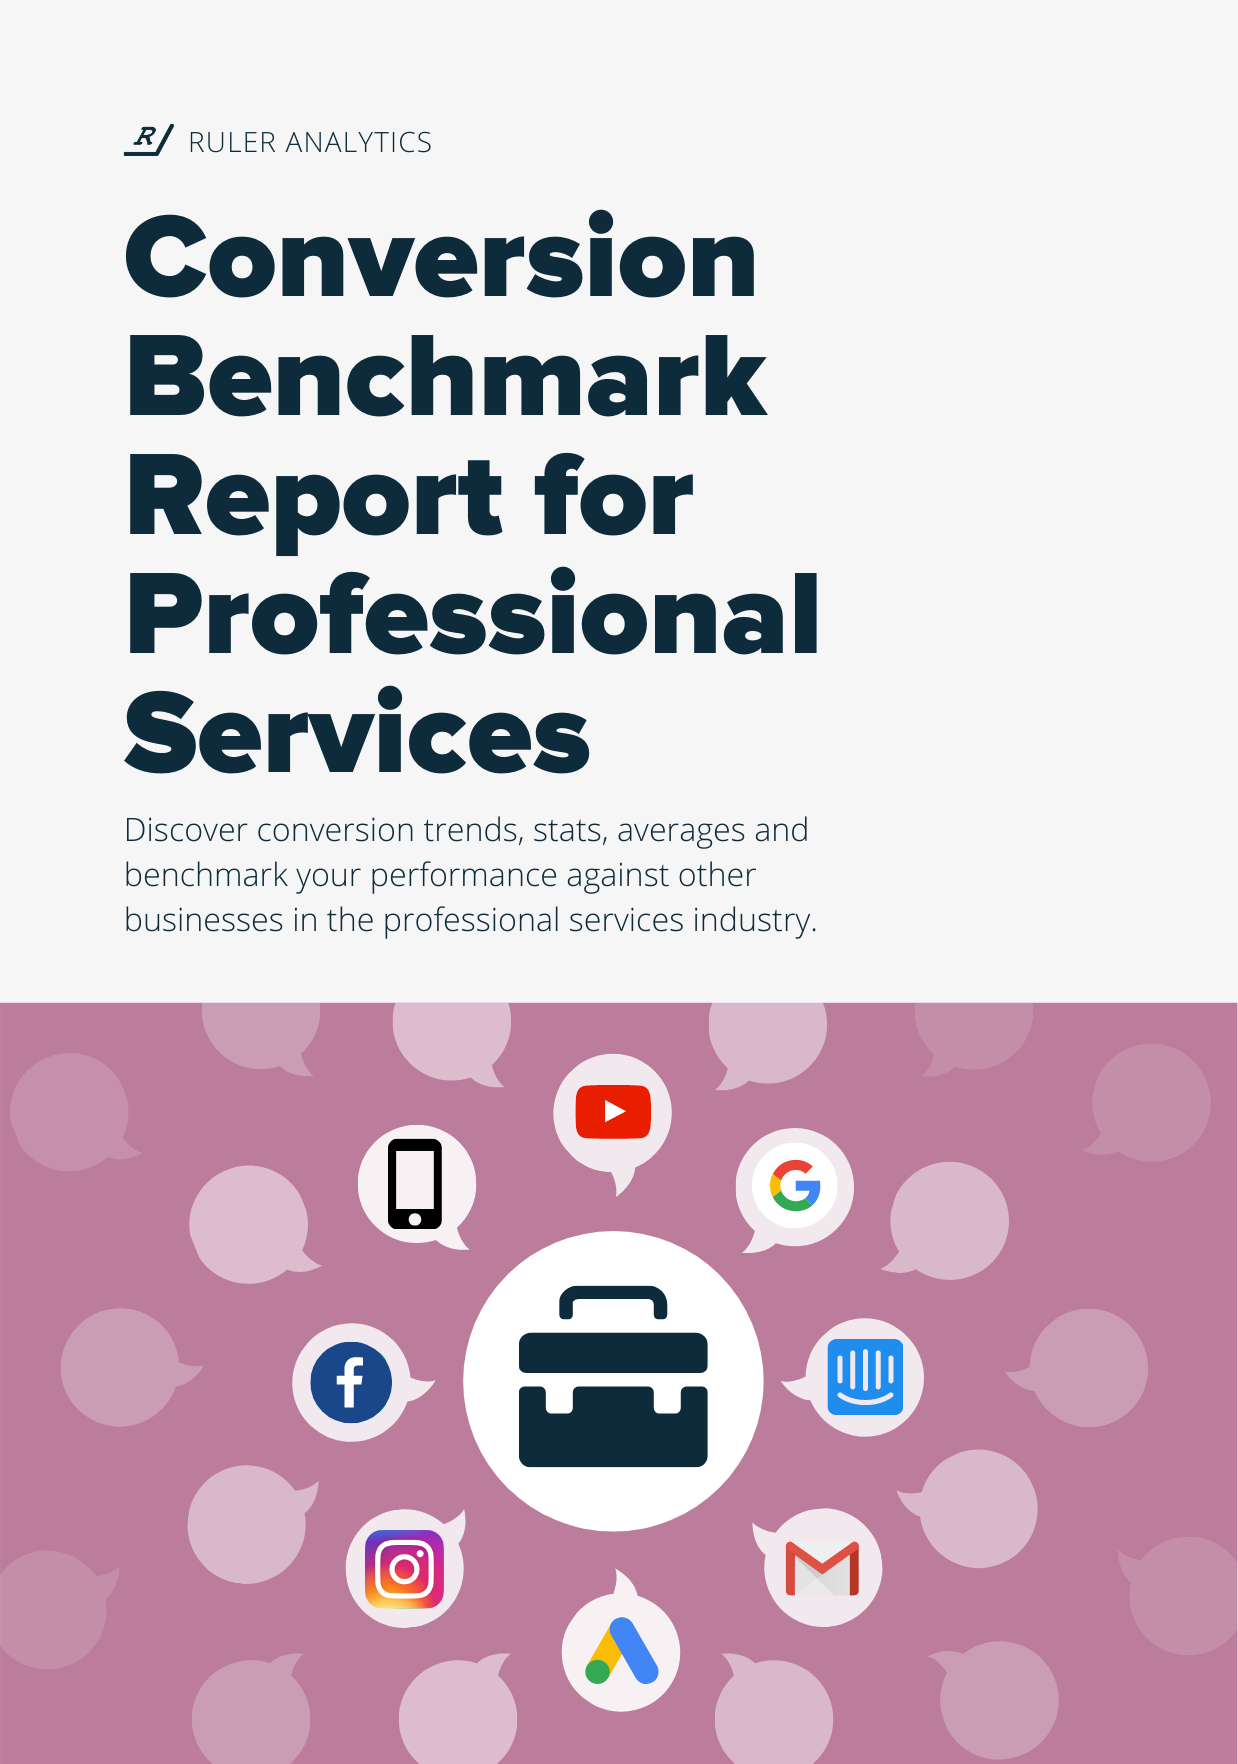 Conversion Benchmark Report for Professional Services